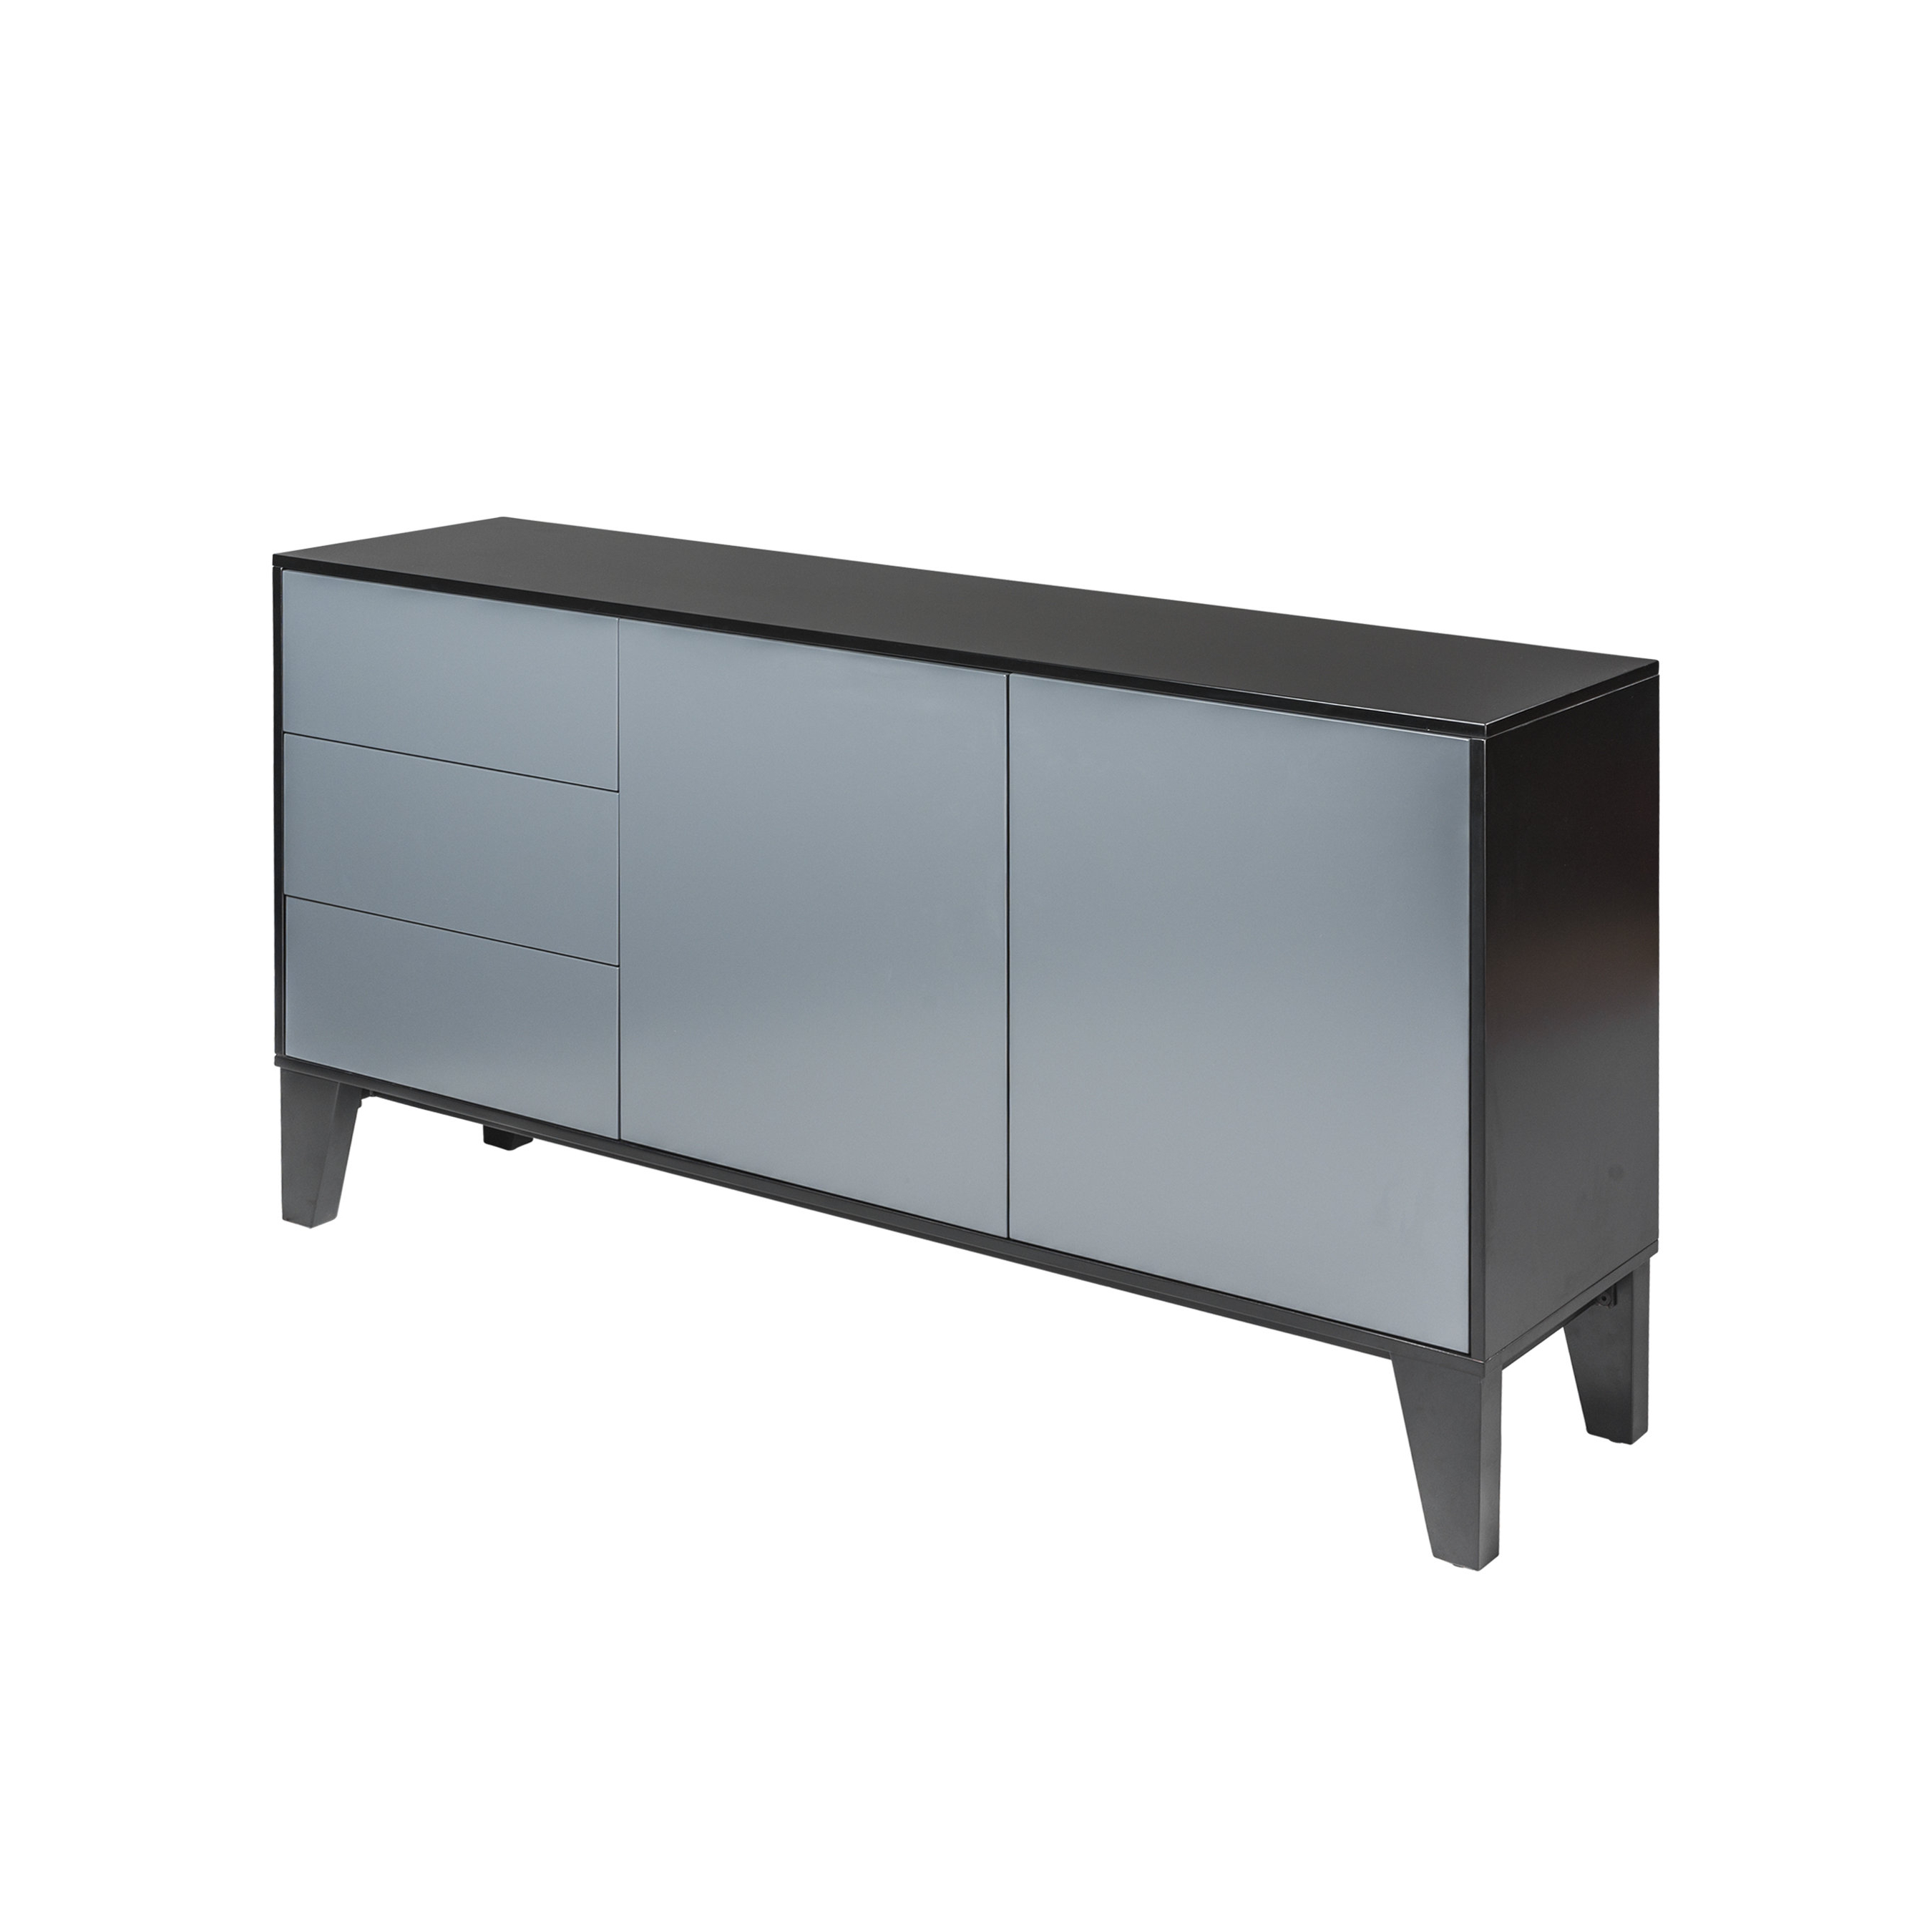 Trendy Brayden Studio Quesinberry Sideboard Intended For Stillwater Sideboards (View 18 of 20)